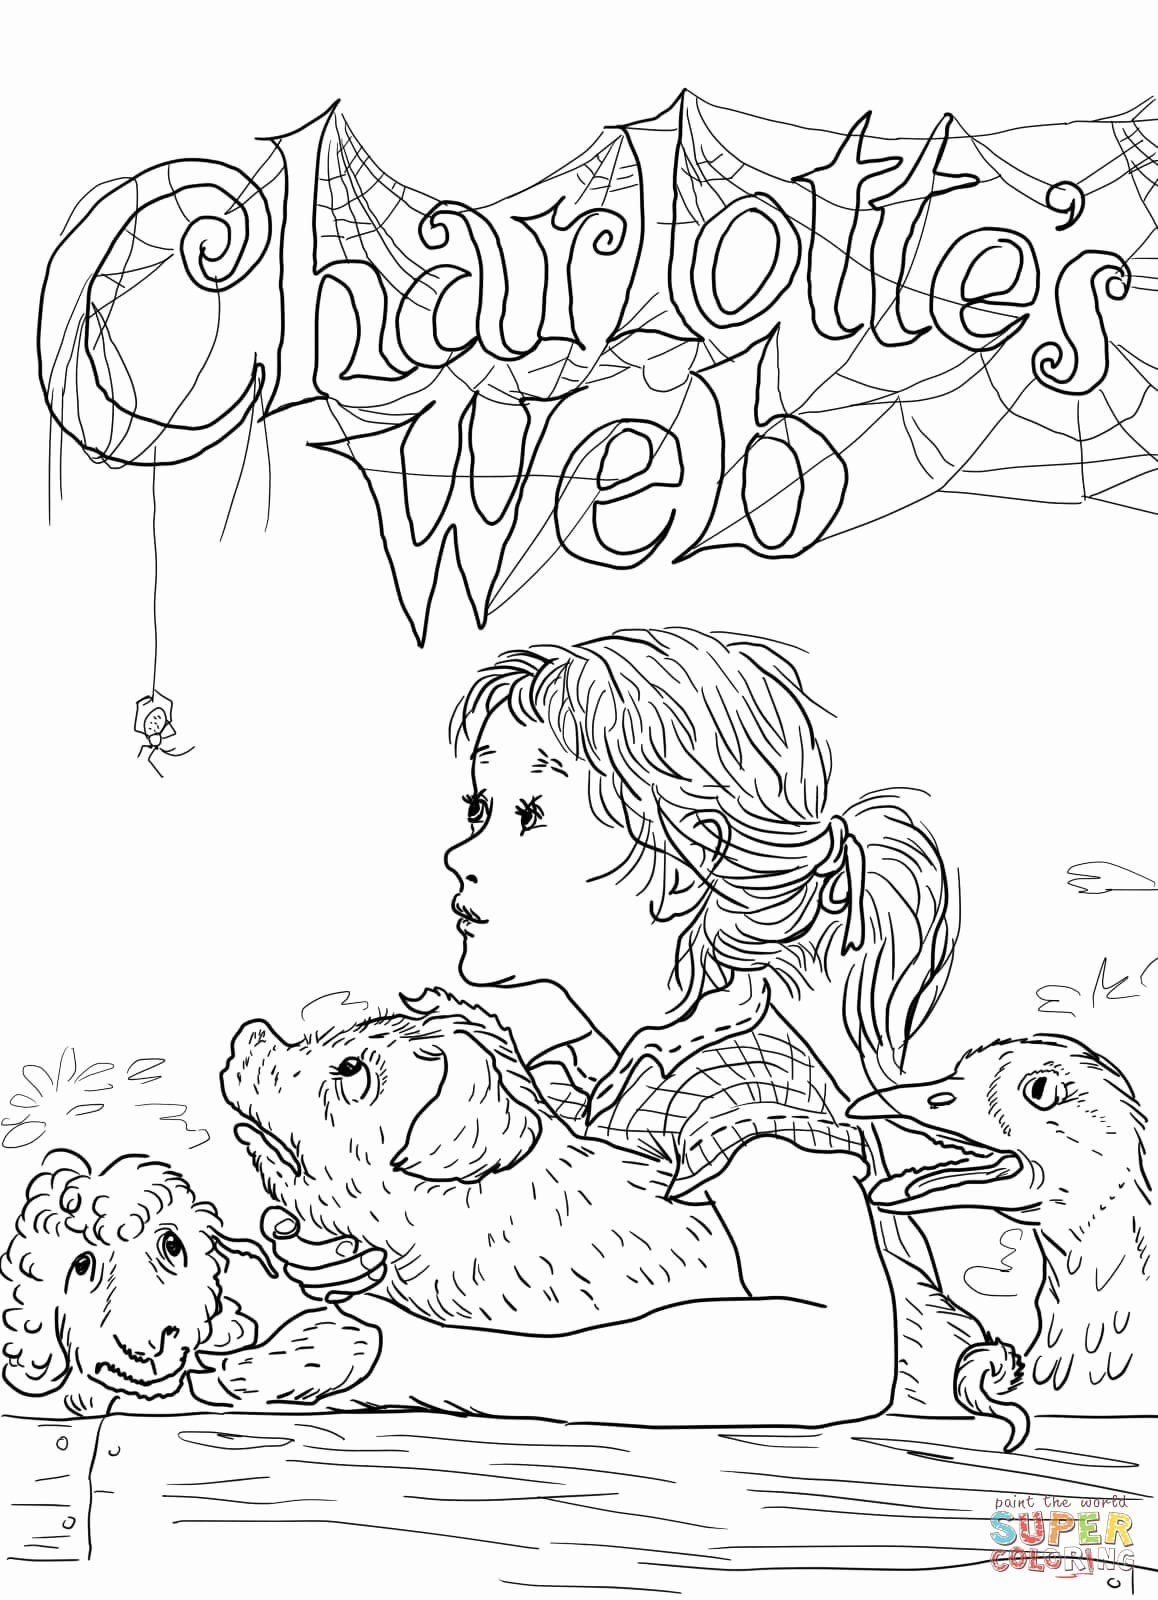 Charlottes Web Coloring Page Lovely Charlotte S Web Coloring Page Birthday Coloring Pages Coloring Pages Inspirational Halloween Coloring Pages